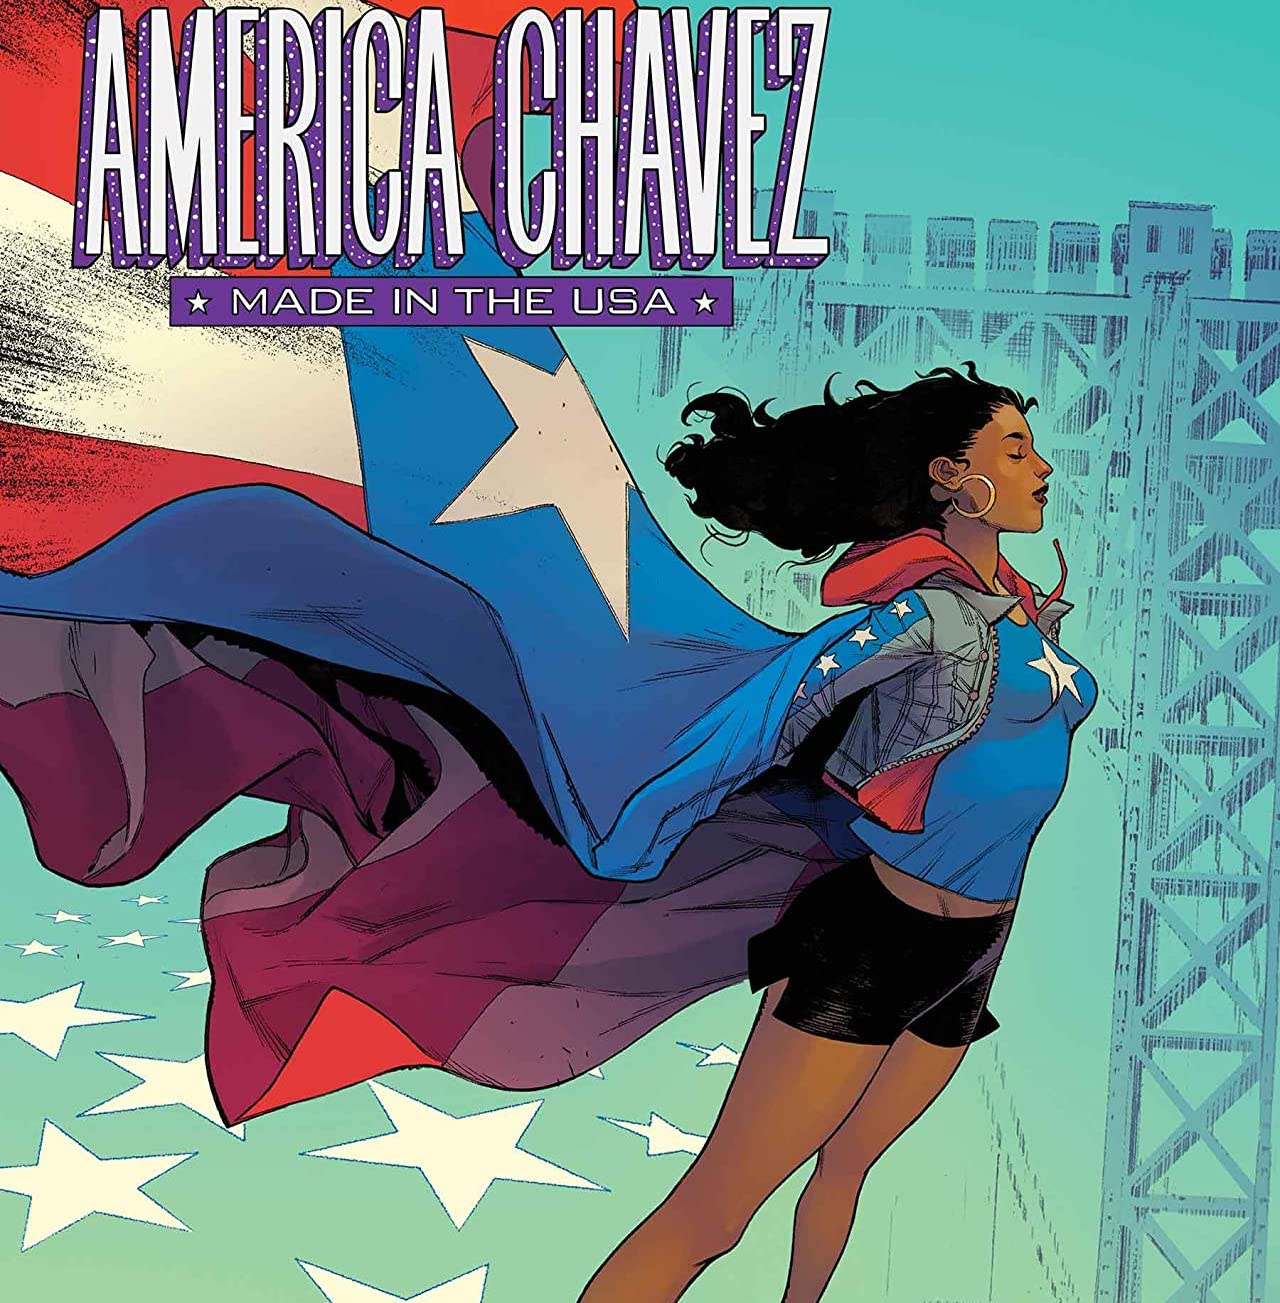 'America Chavez: Made in the USA' #2 plays up the complicated origin of its character